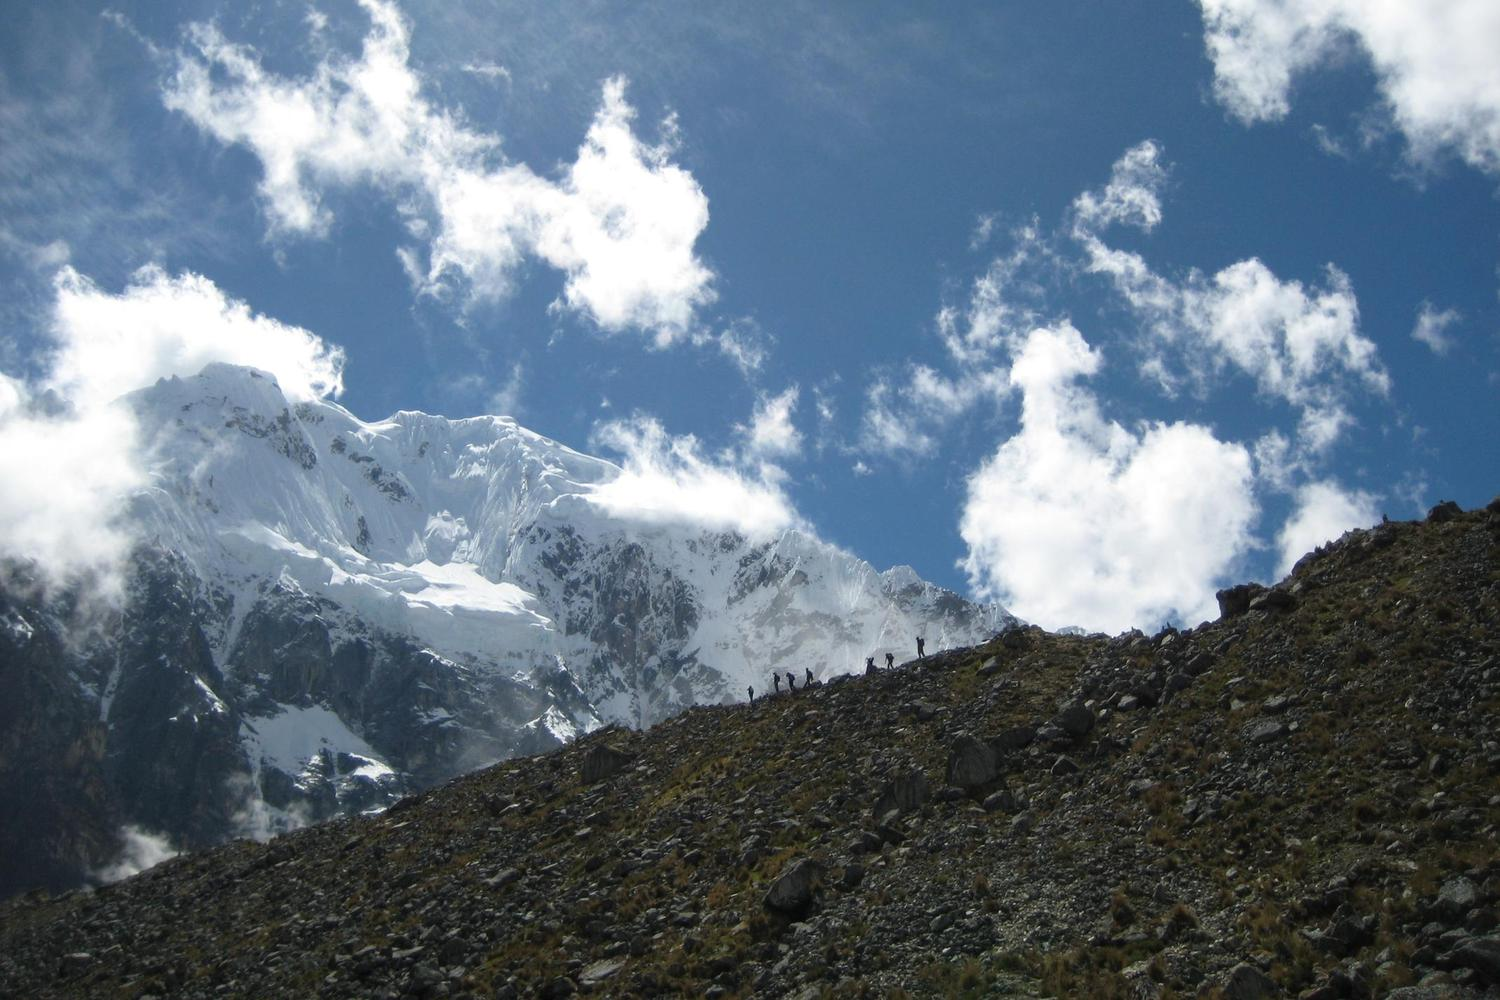 Walking along a ridge in front of Salkantay, Peru